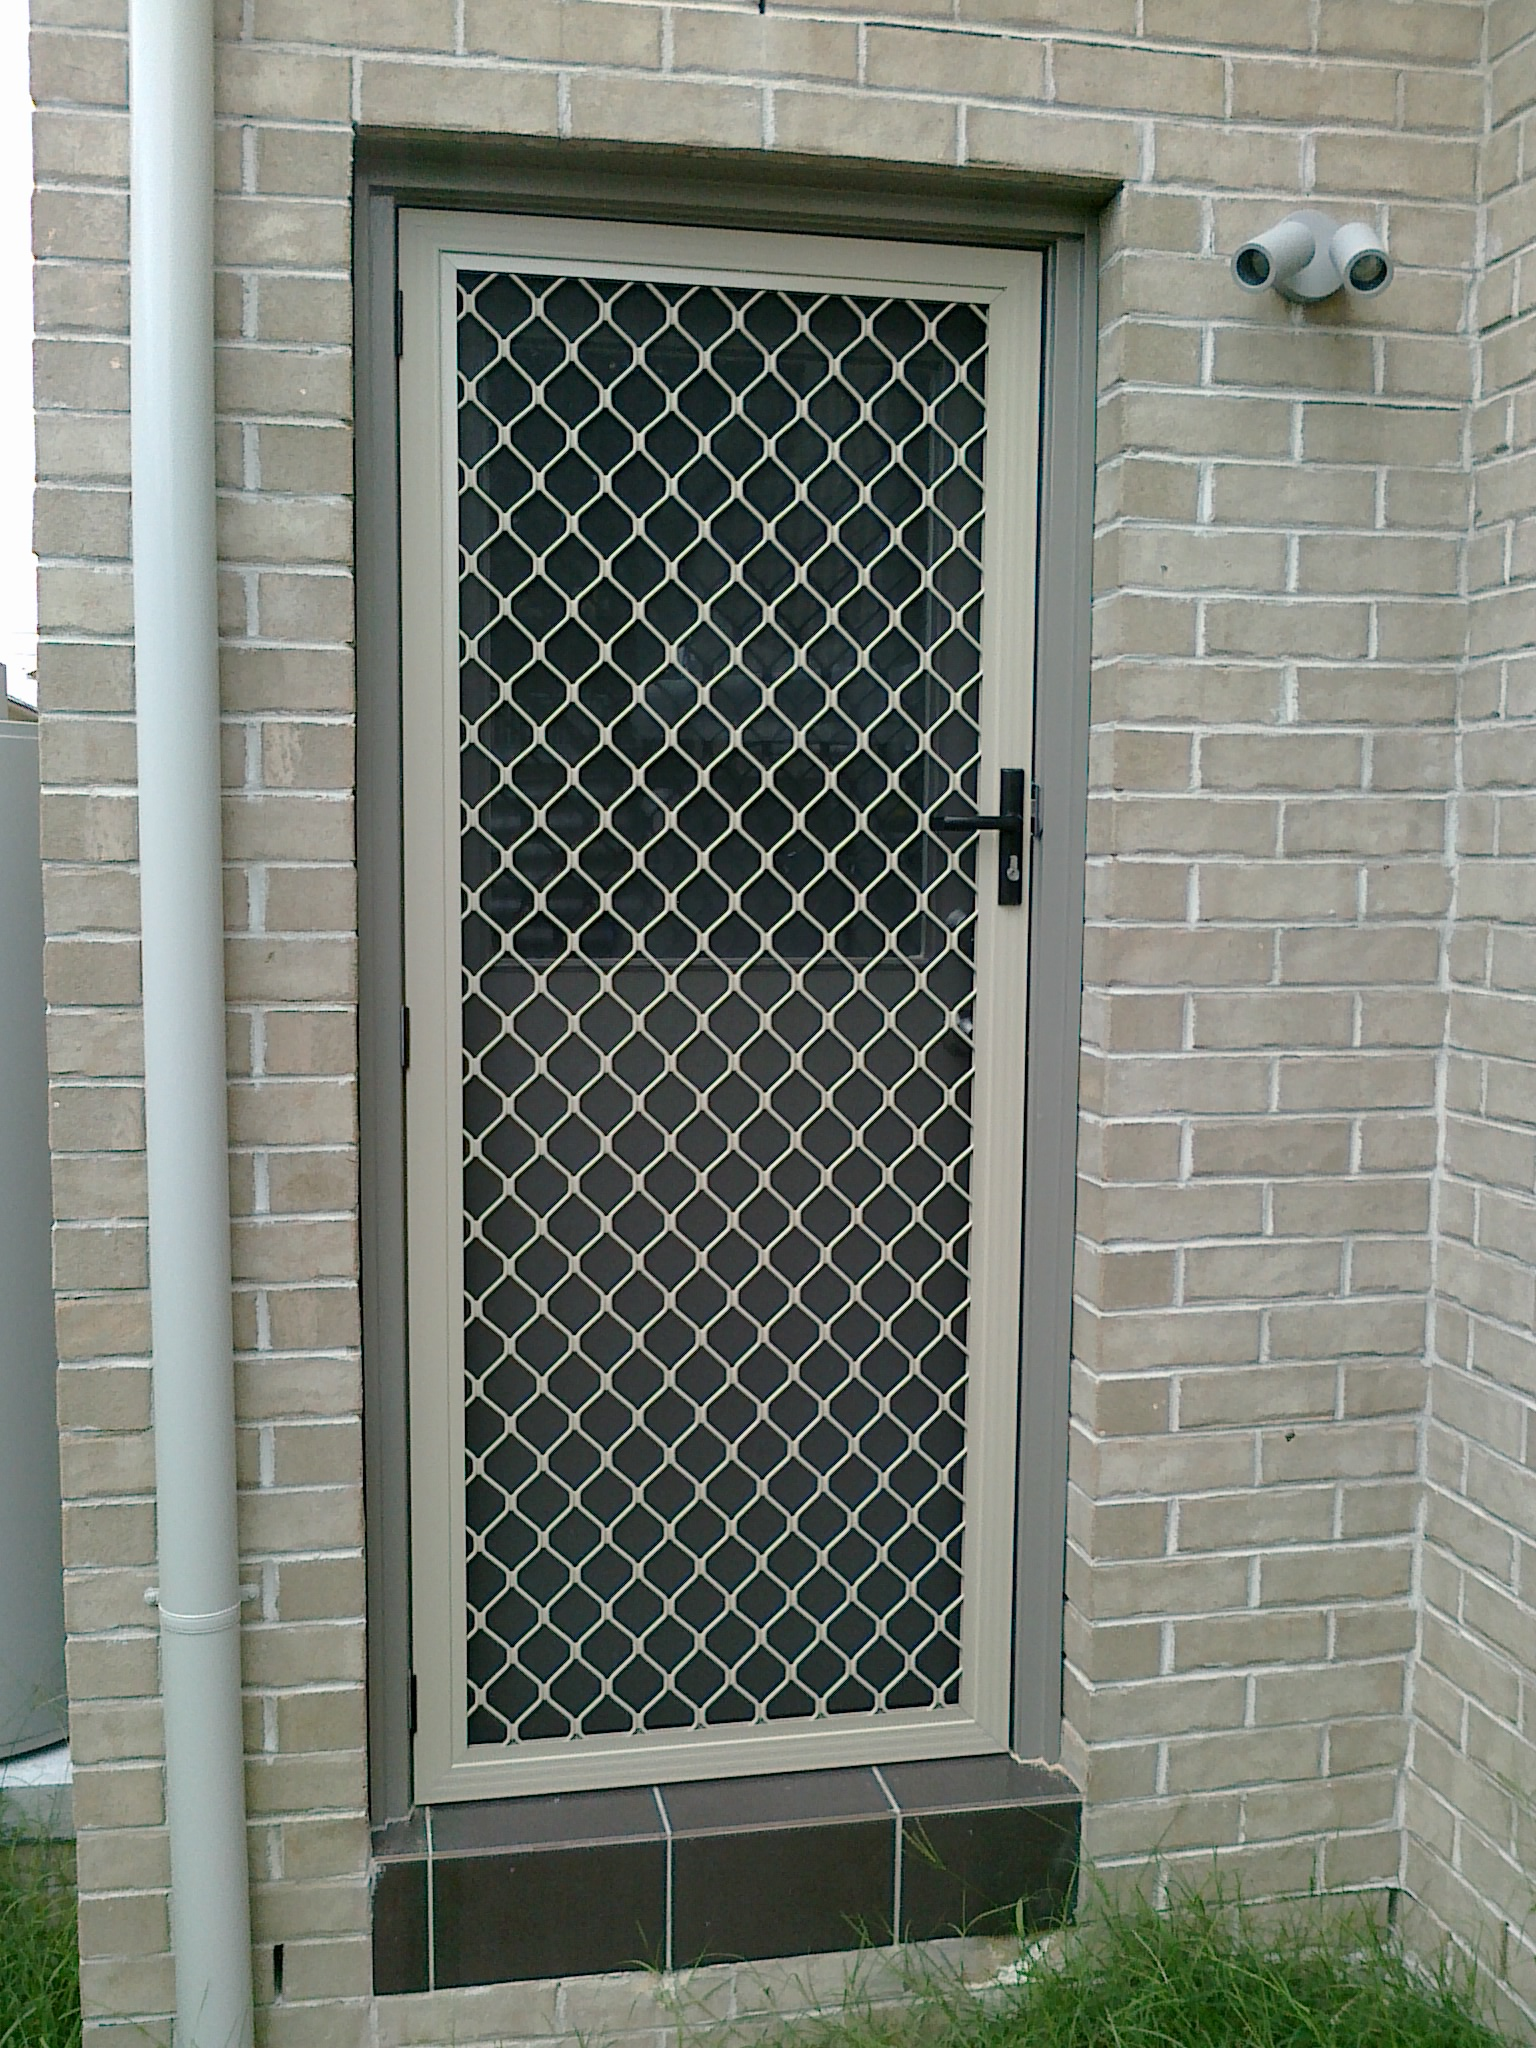 Barrier Grill Doors & Barrier Grill Doors | Blinds Shutters Awnings Screens \u0026 Luxury ... Pezcame.Com